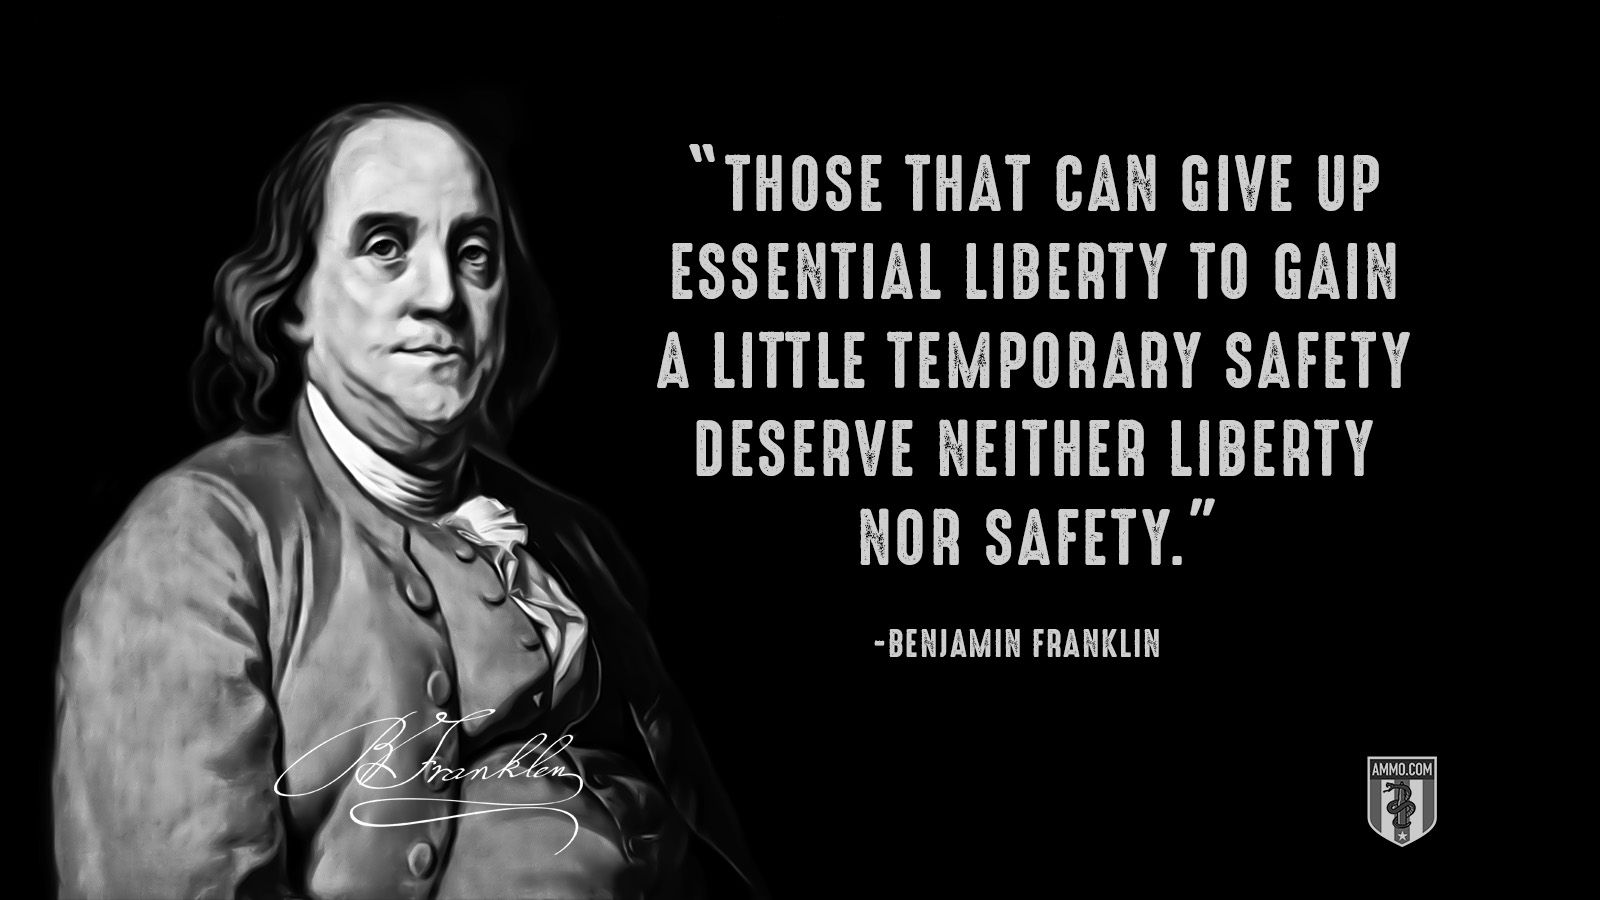 Those That Can Give Up Essential Liberty To Gain A Little